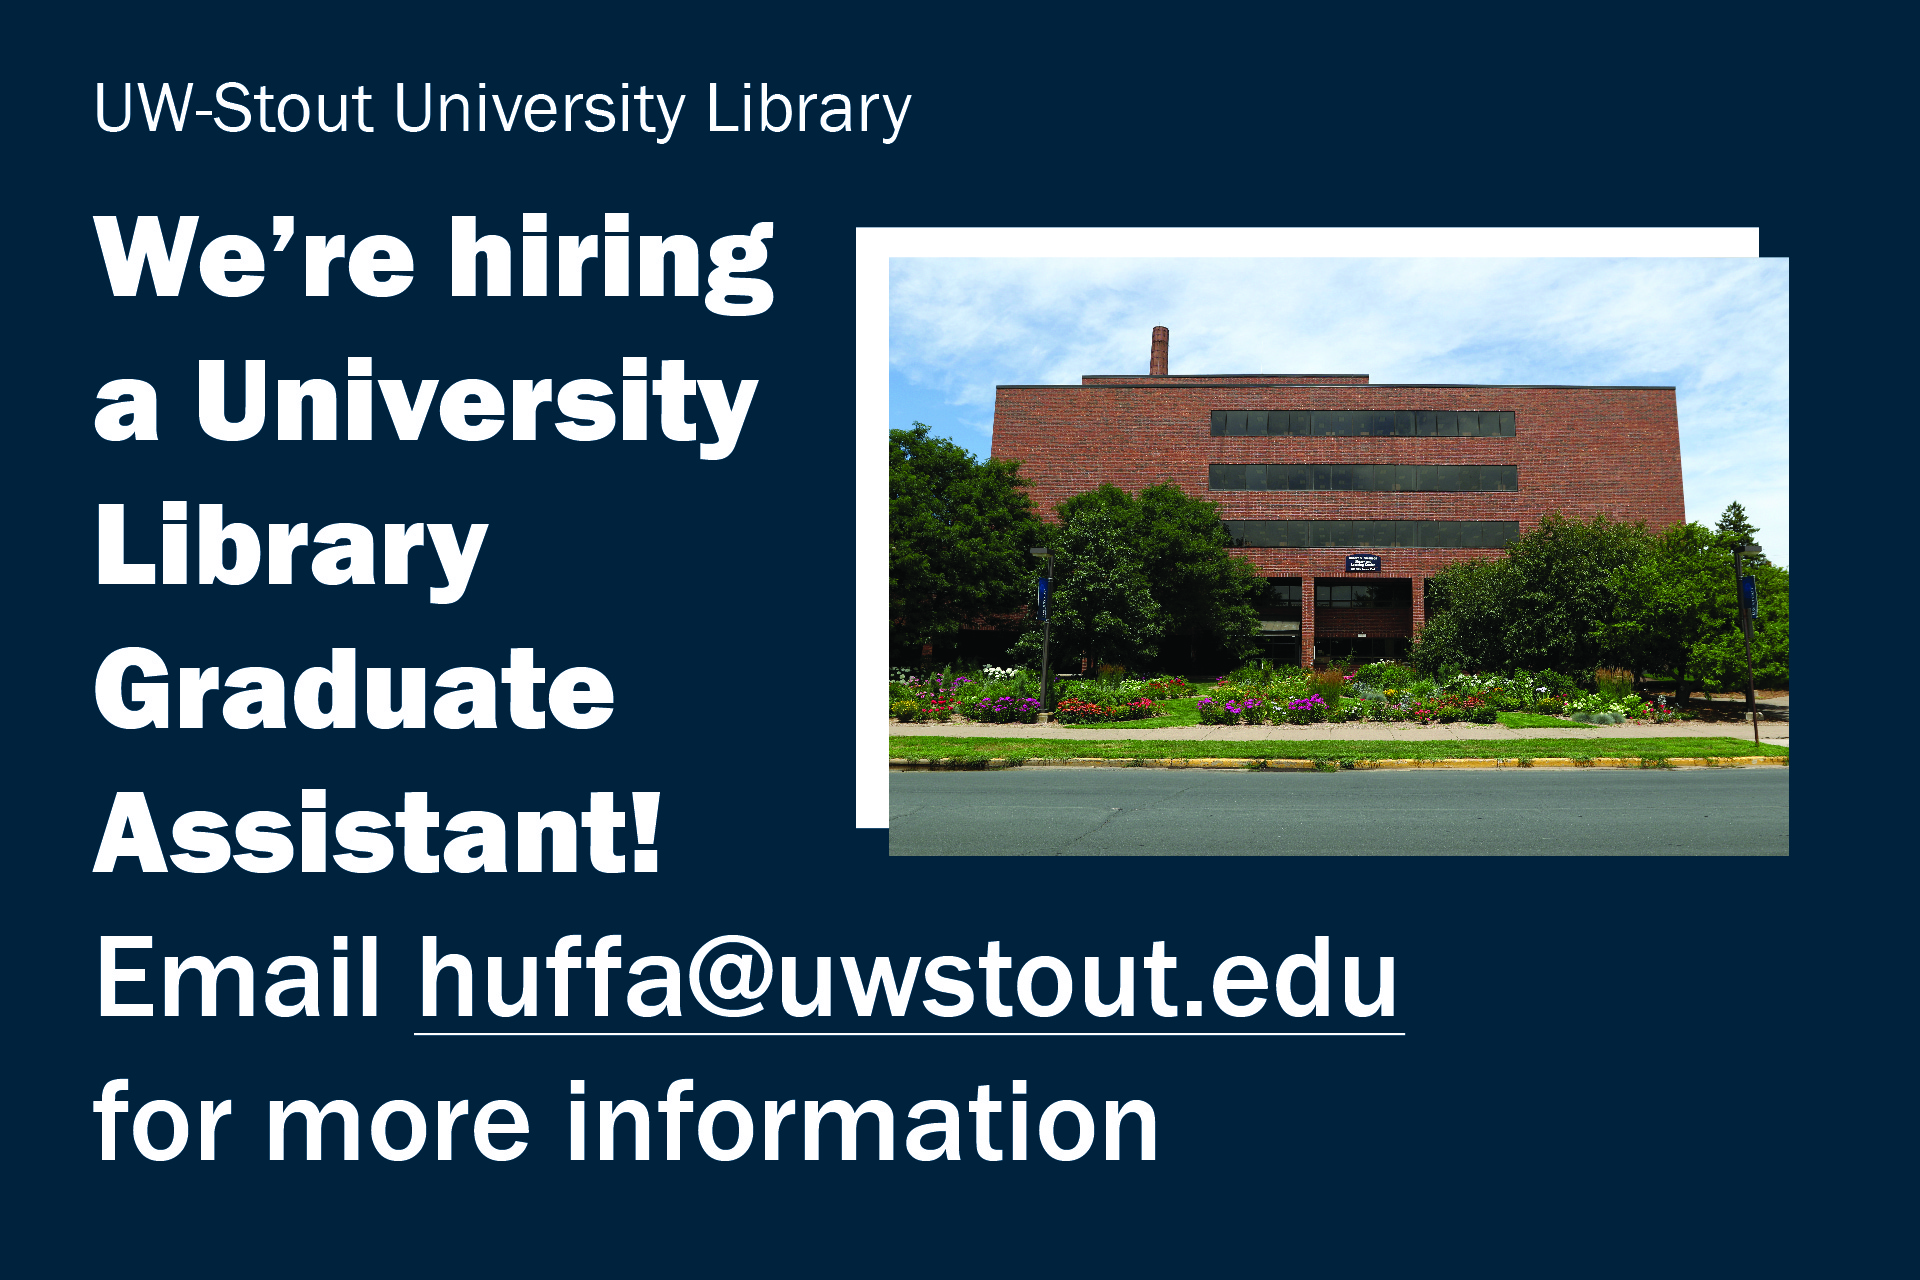 Hiring Graduate Assistant at the Library